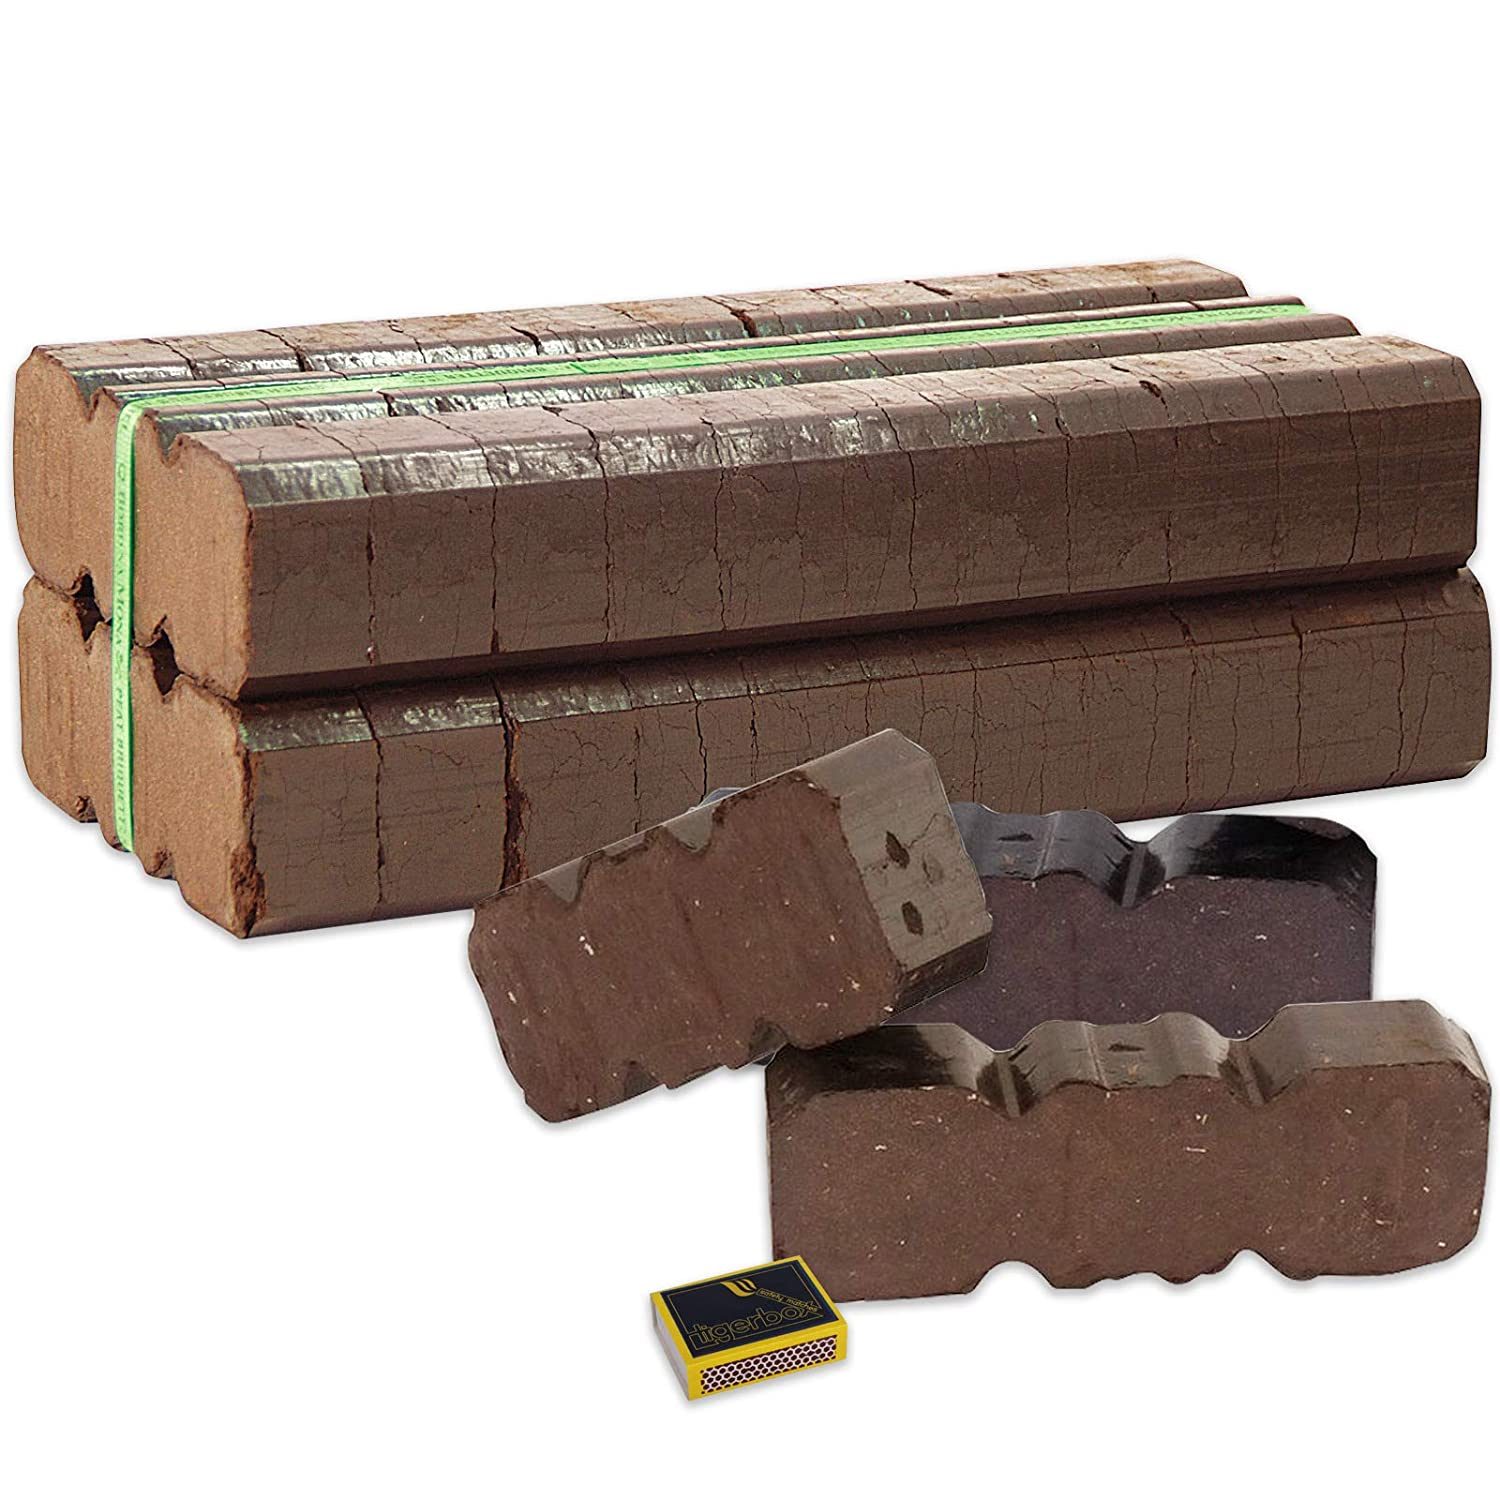 2 x 12.5kg Bales of Long Lasting Overnight Peat Block Briquettes for Open Fires /& Log Burning Stoves and Tigerbox Safety Matches